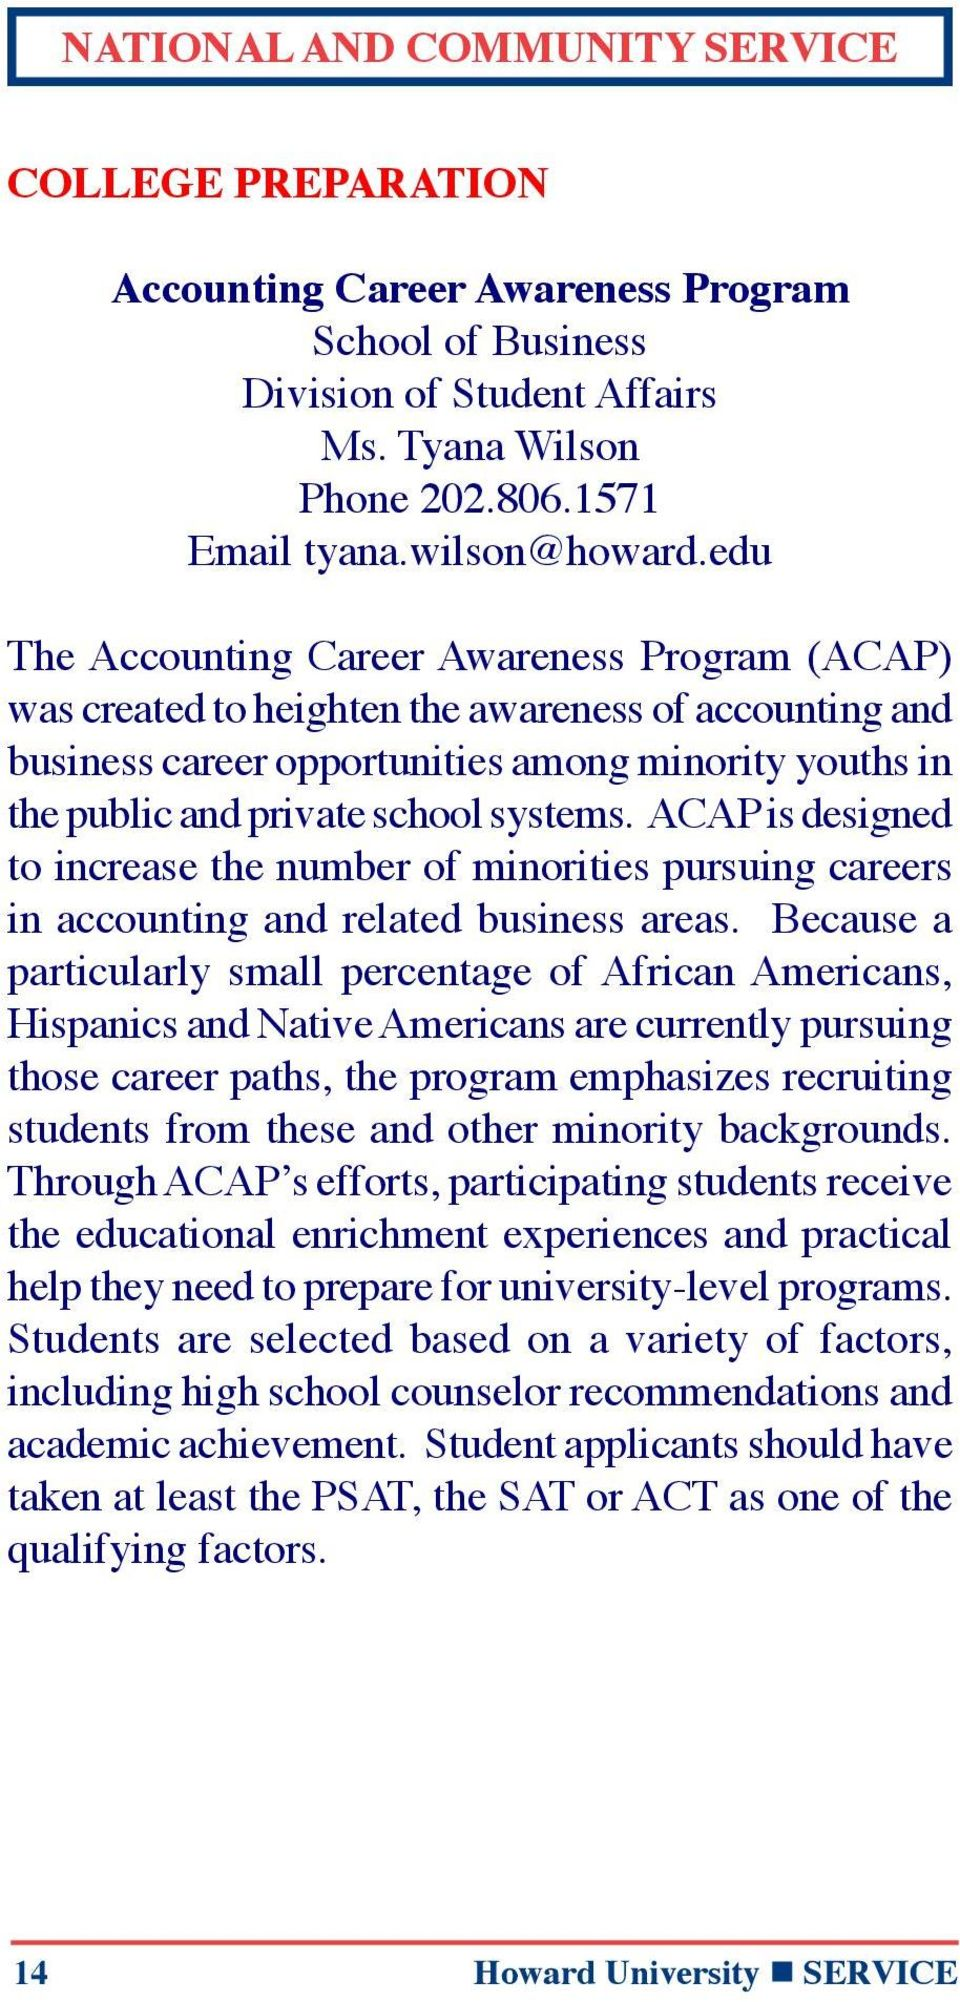 ACAP is designed to increase the number of minorities pursuing careers in accounting and related business areas.